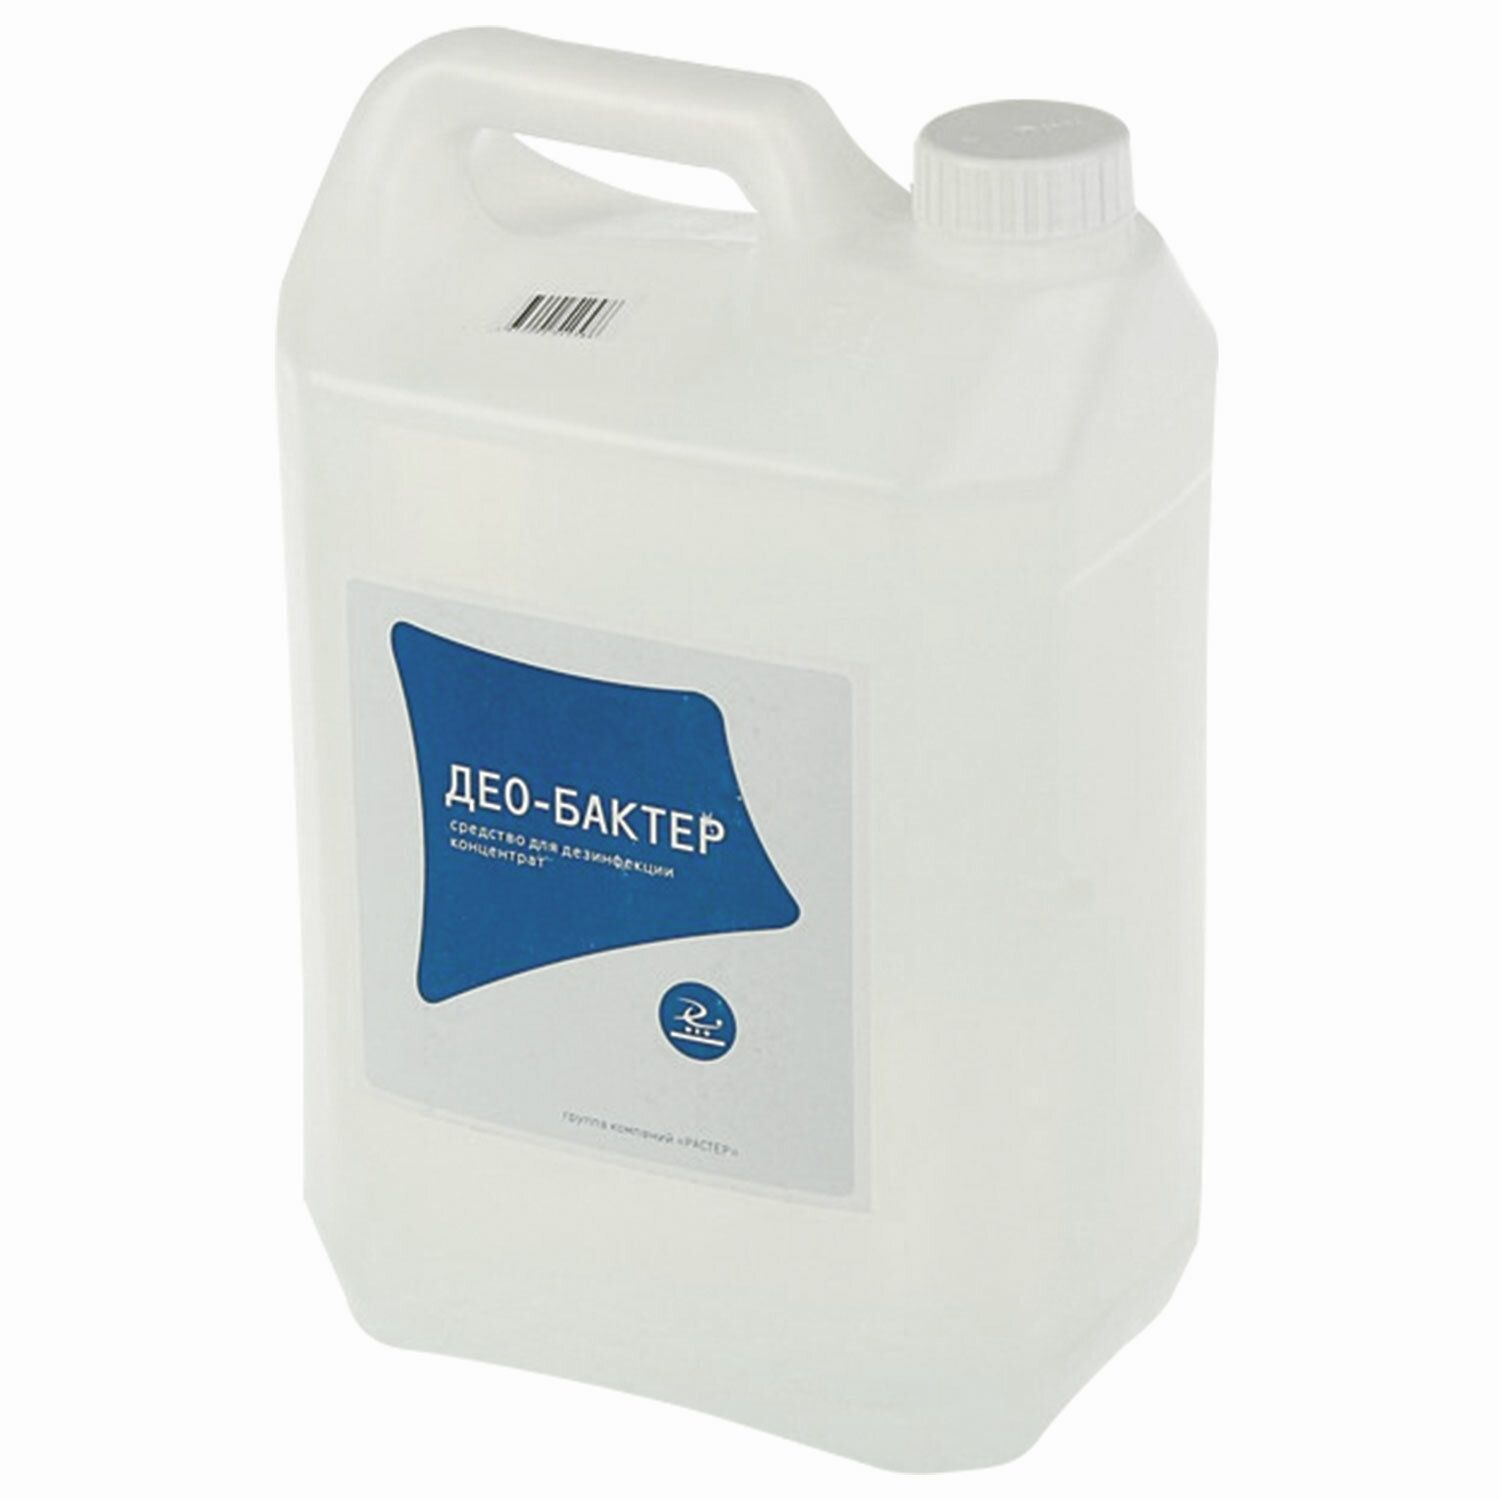 DEO / Disinfectant 5 l DEO-BACTER, concentrate